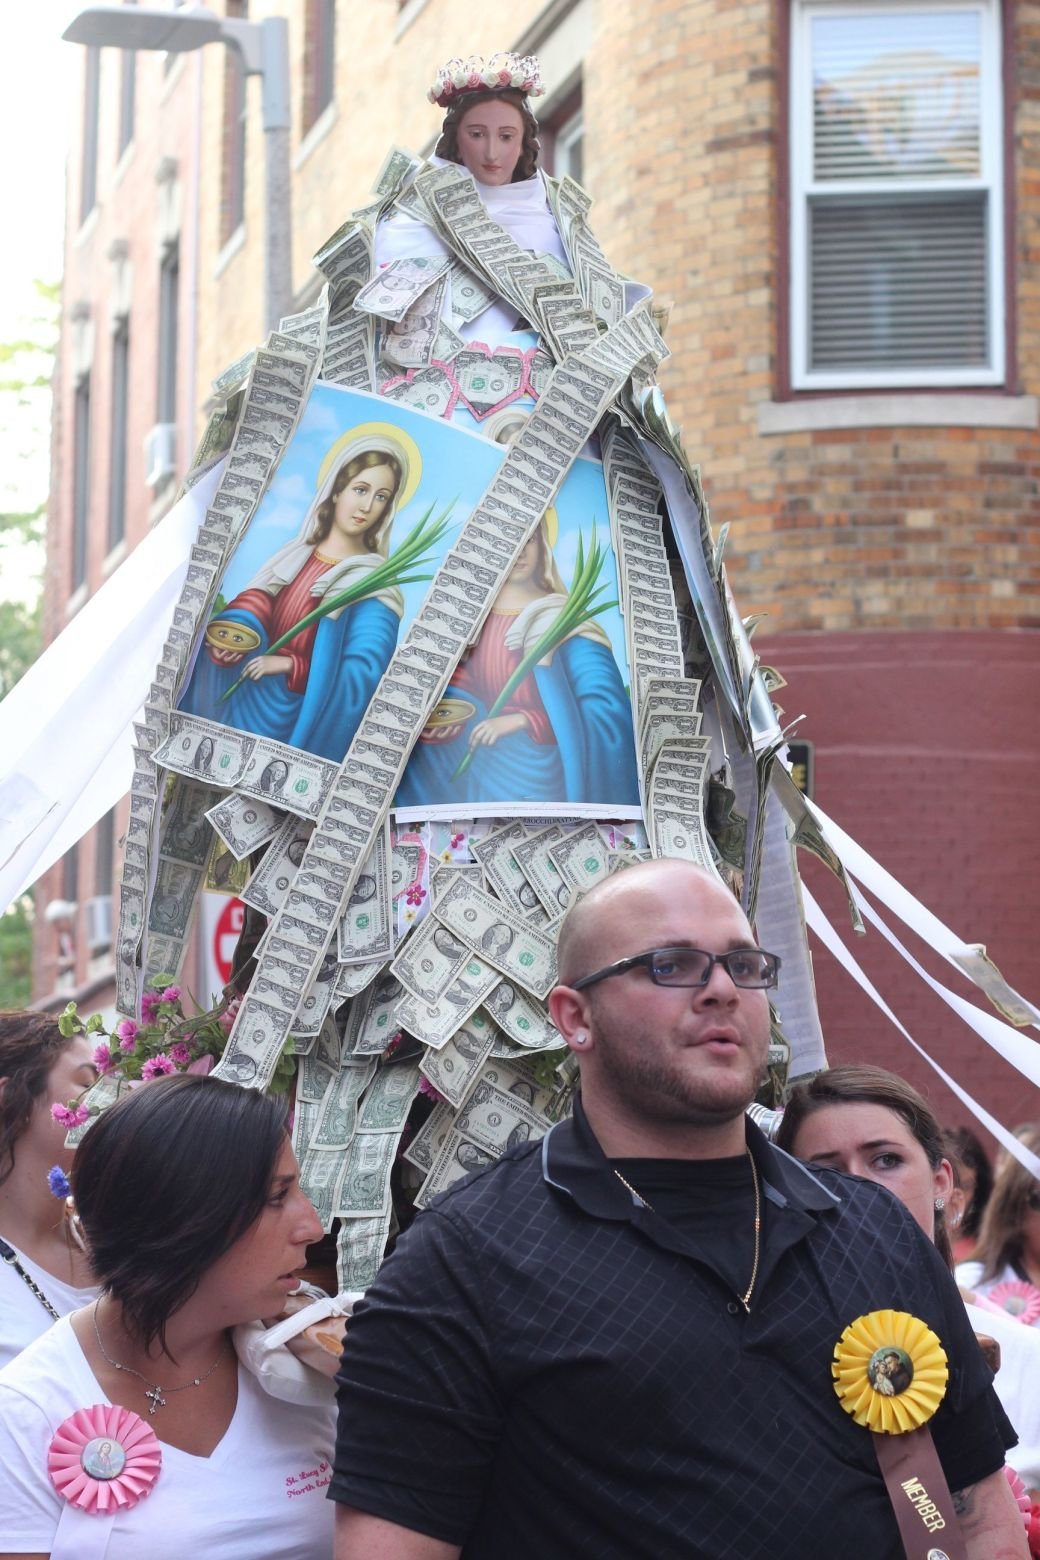 boston north end santa lucia festival august 31 5